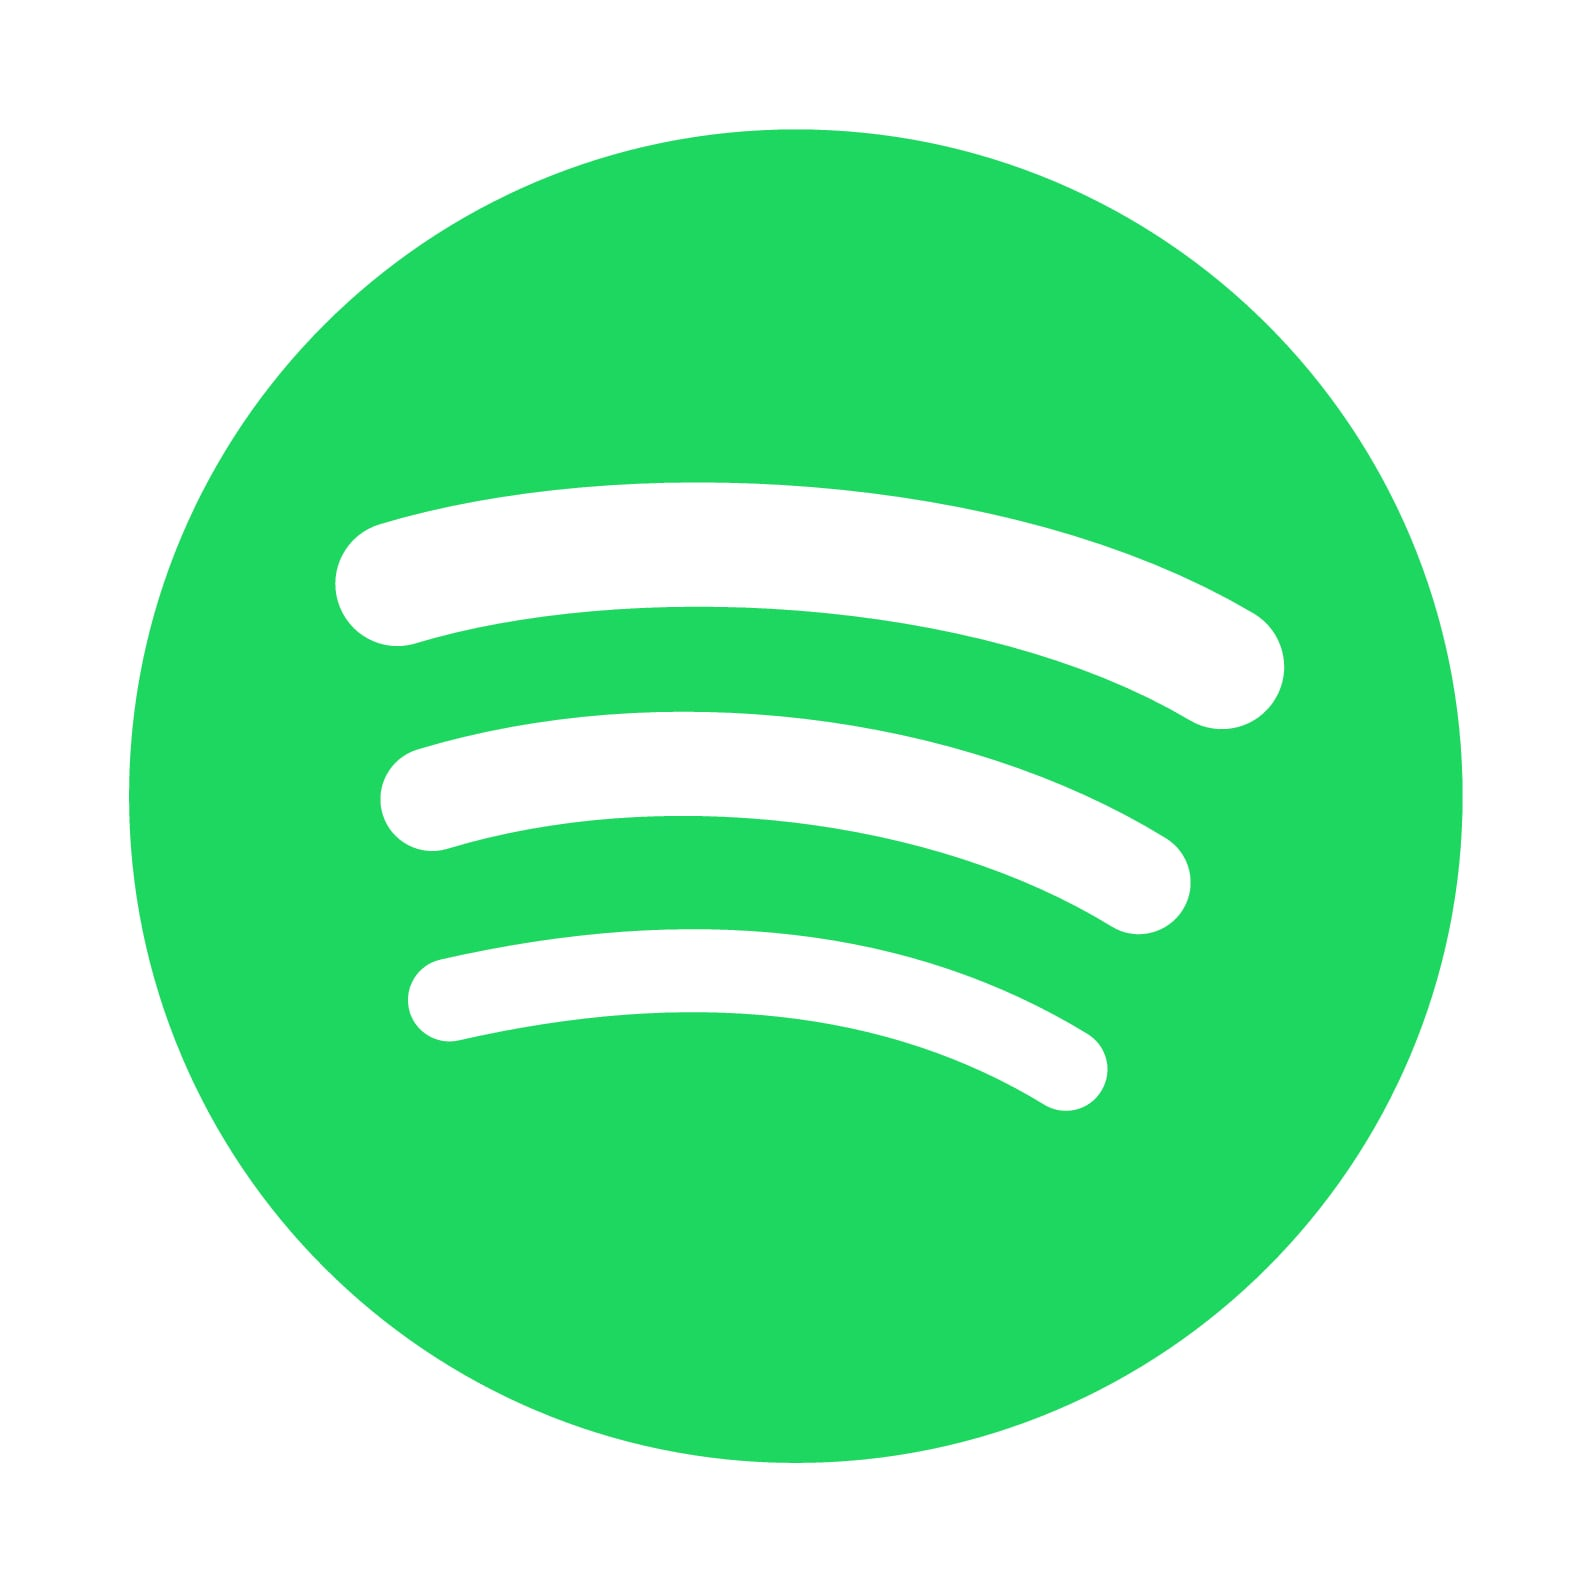 16w17 - Support Site - Spotify (LOGO)